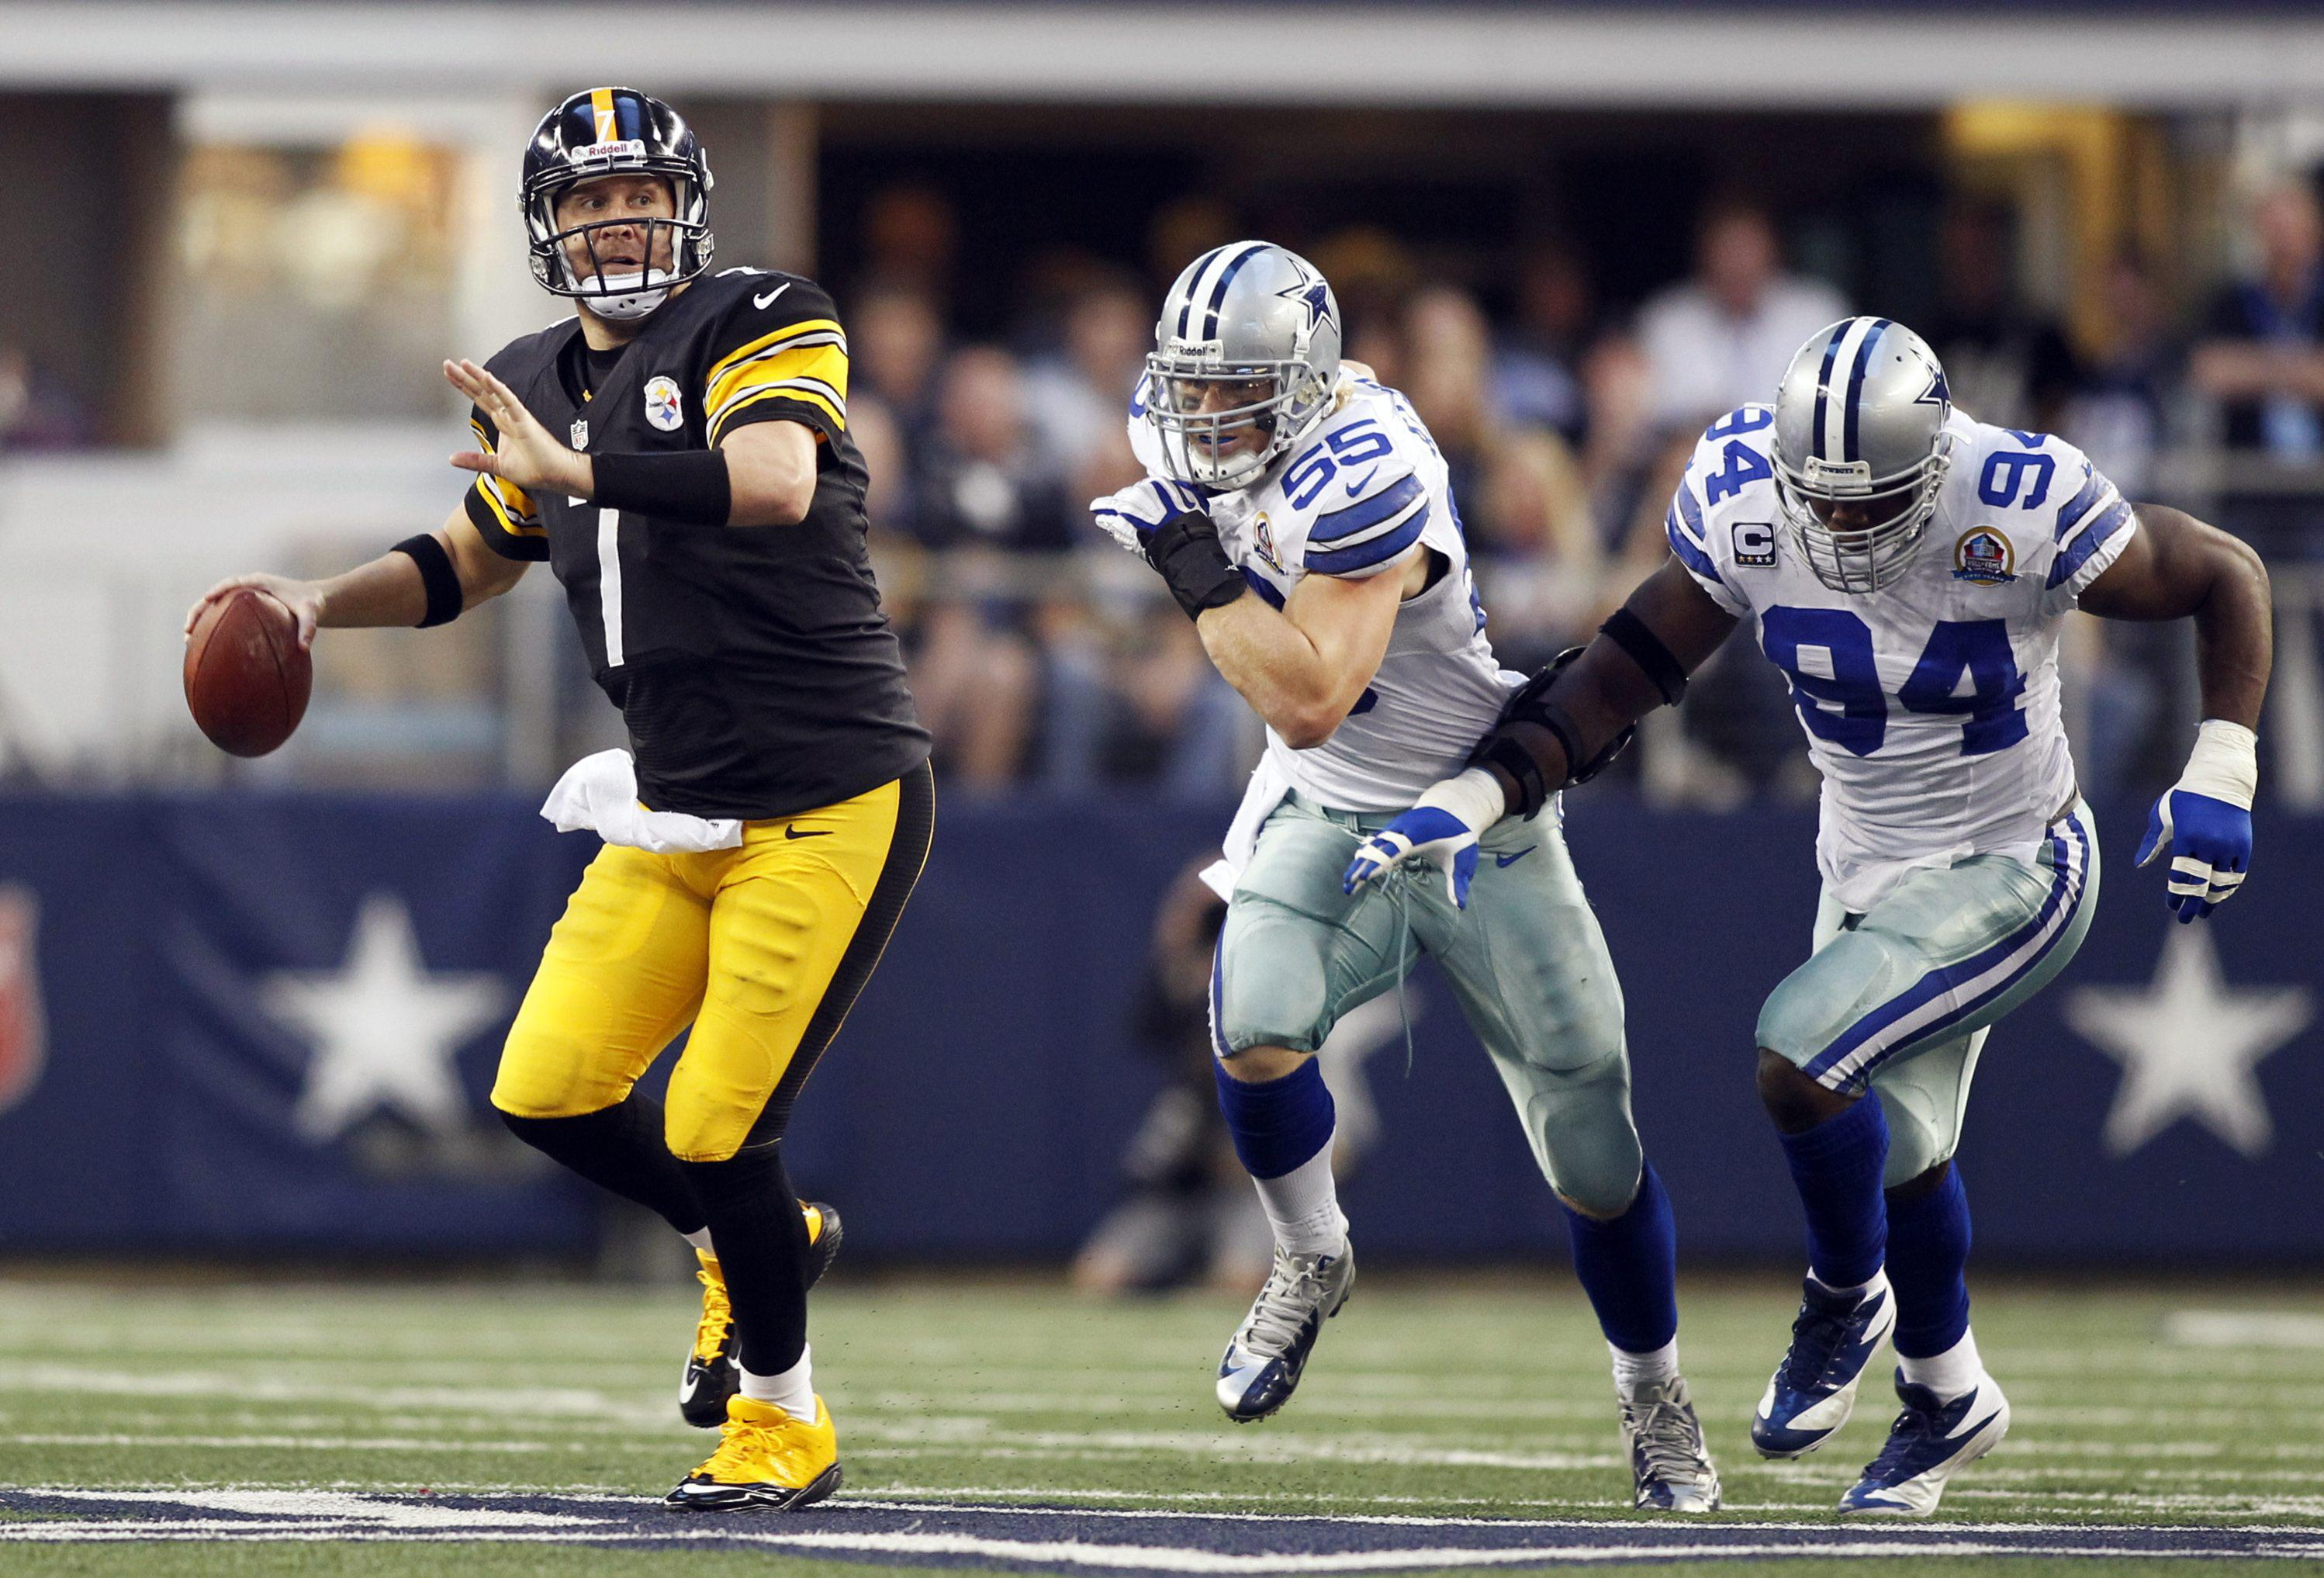 Quarterbacks such as Ben Roethlisberger are the most important players - and biggest stars - in the NFL